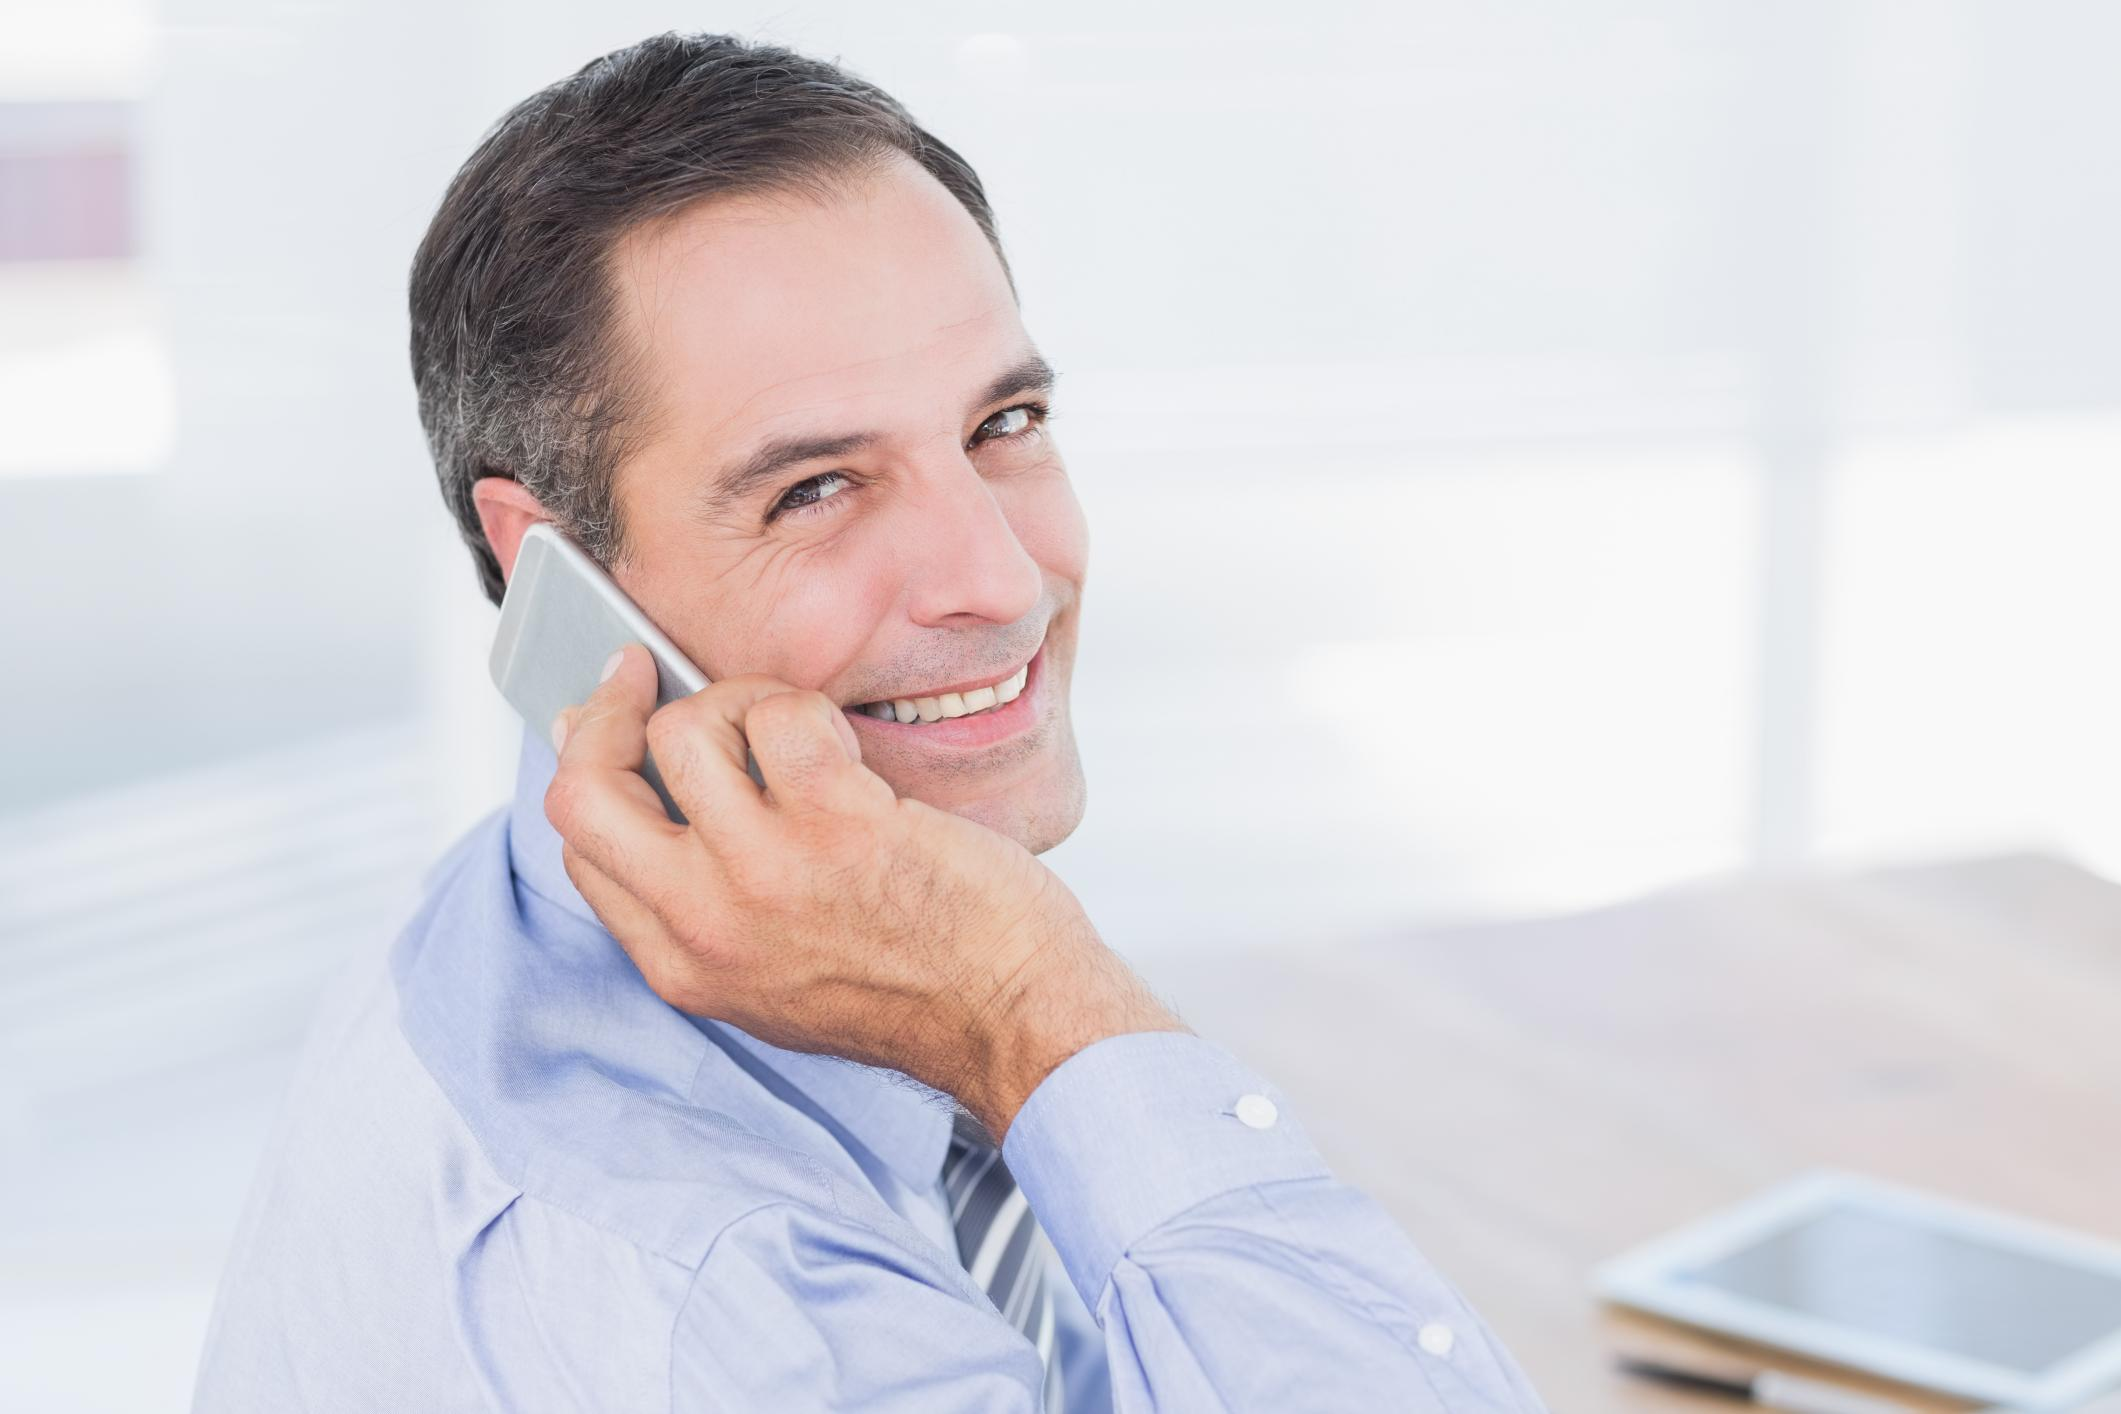 This is a picture of a man having a phone call.